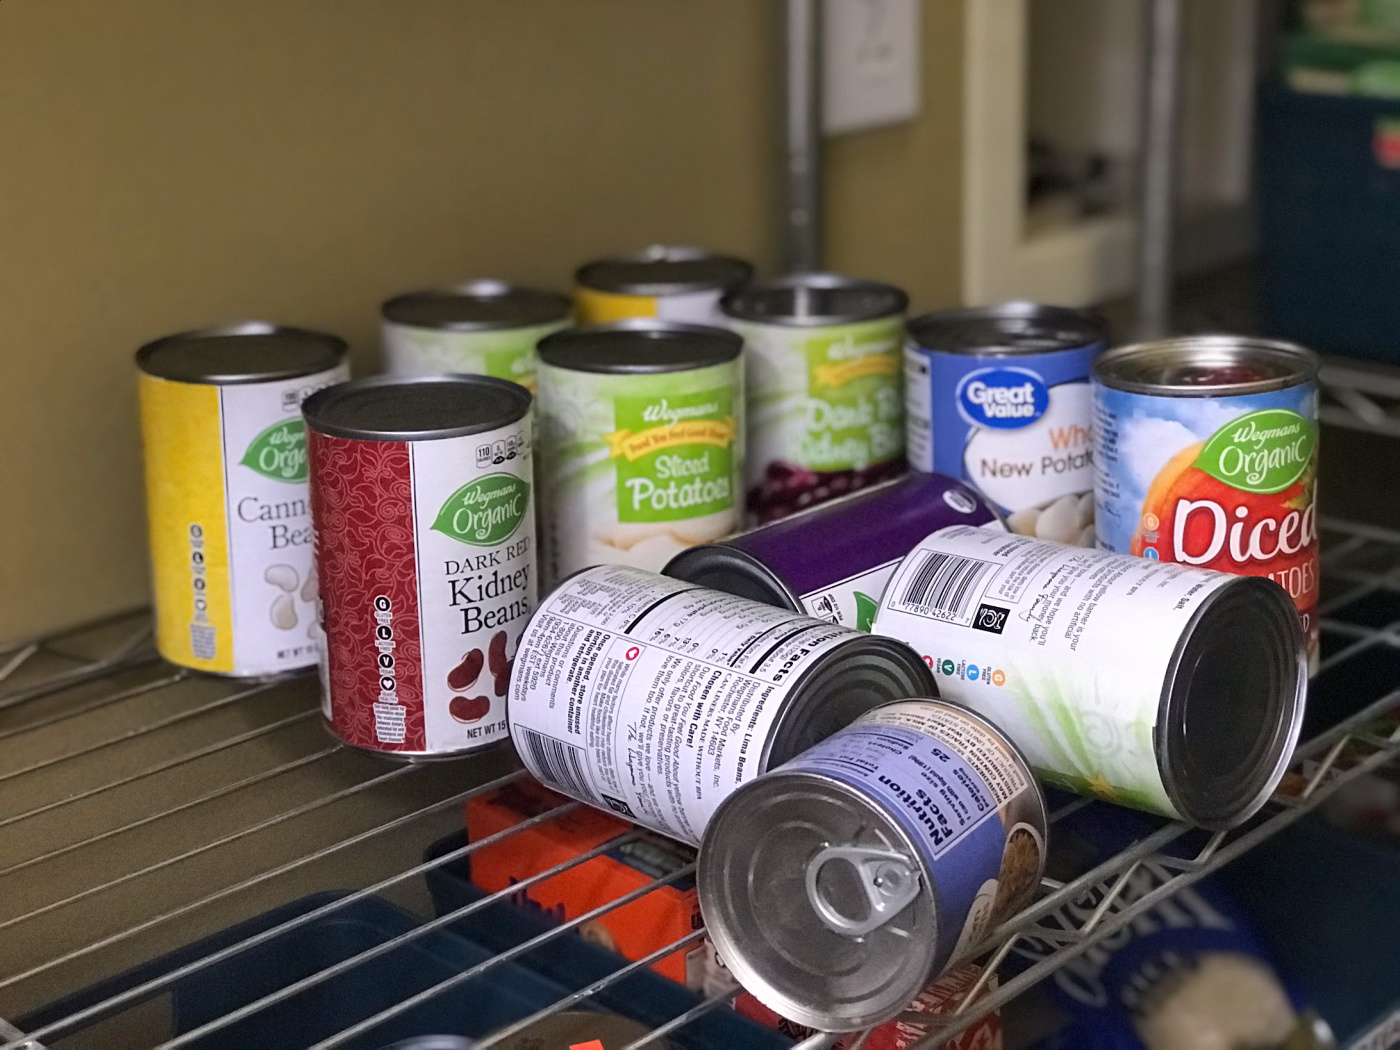 falled cans in a messy pantry